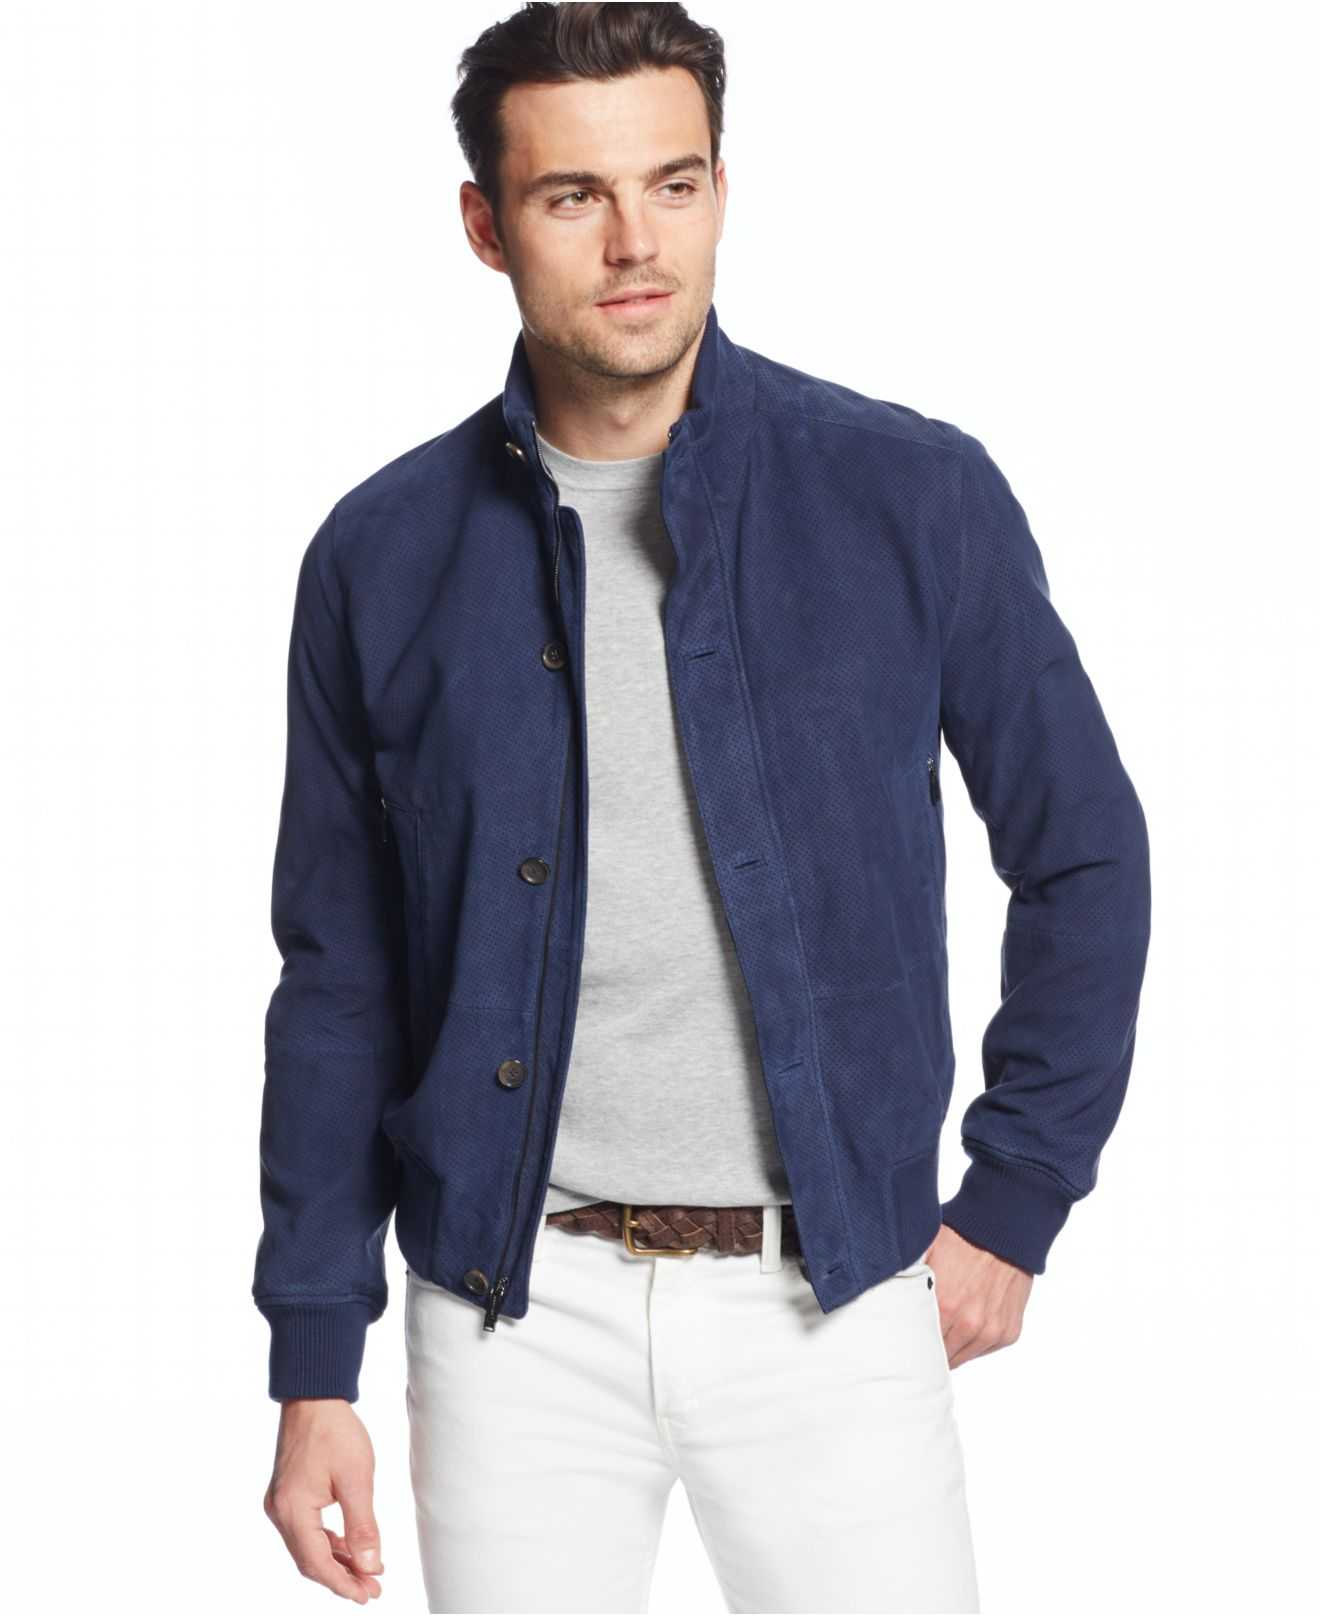 Michael kors Perforated Suede Bomber Jacket in Blue for Men | Lyst